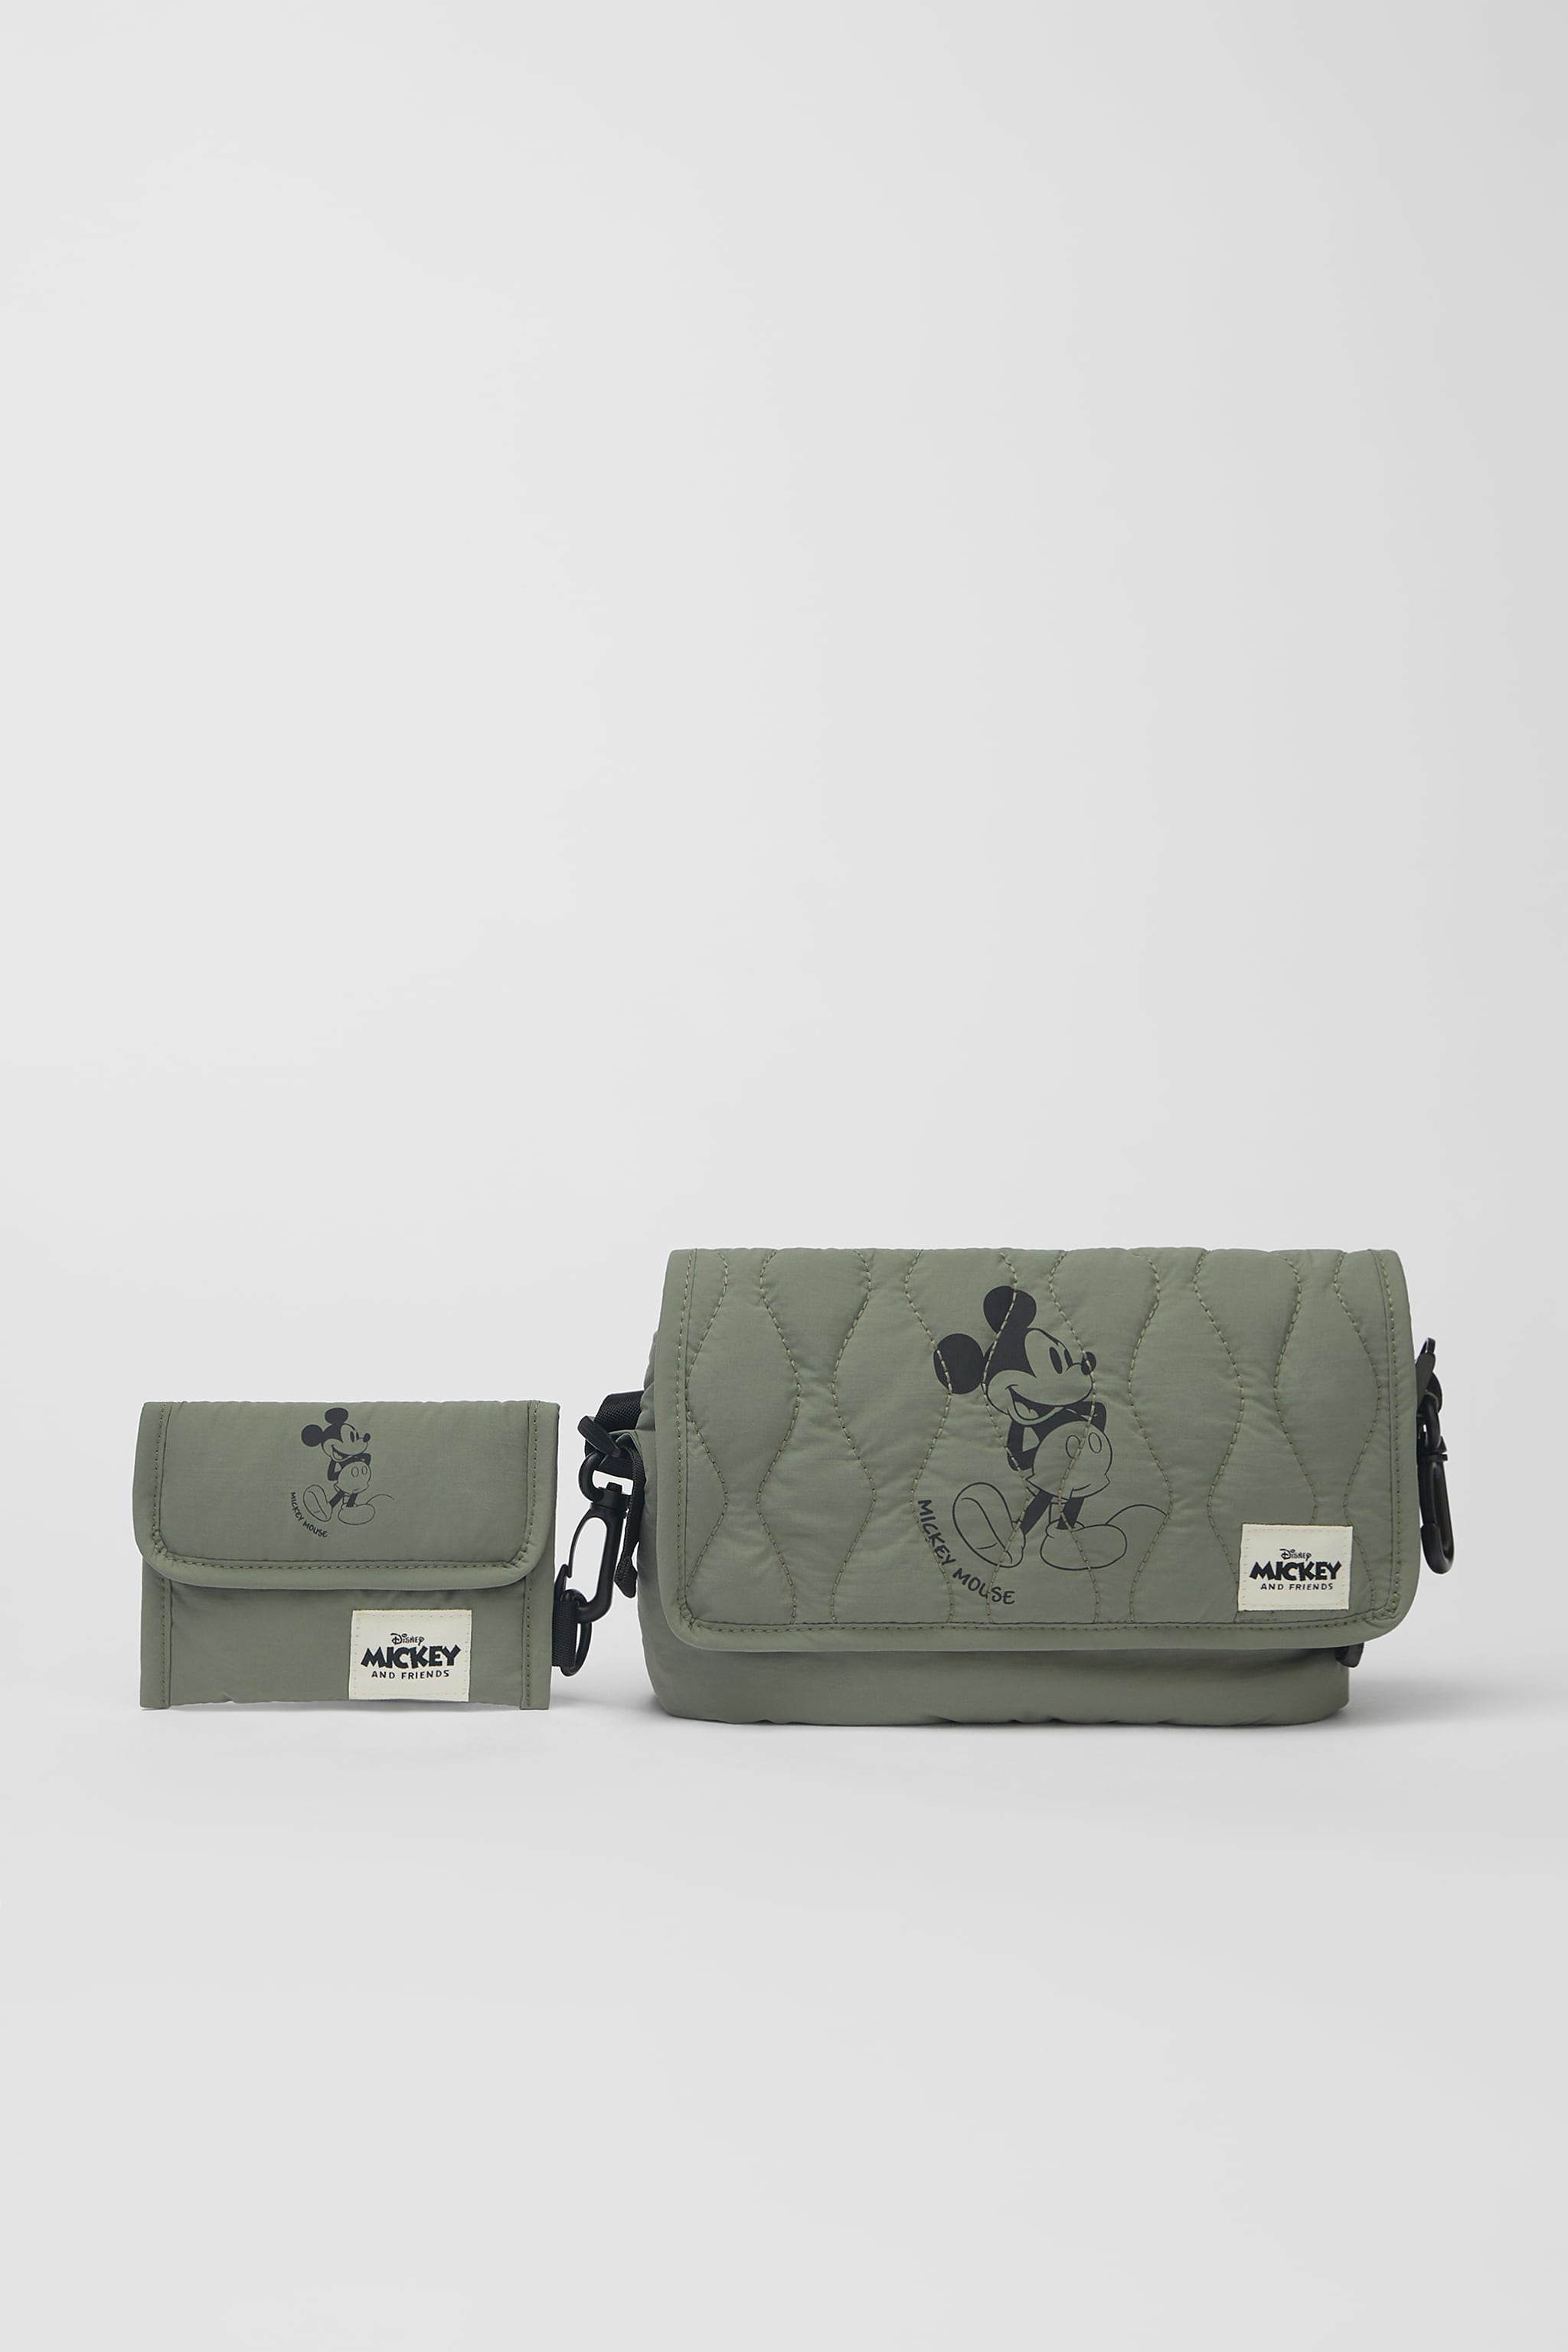 Zara MICKEY MOUSE ⓒDISNEY QUILTED CROSSBODY BAG